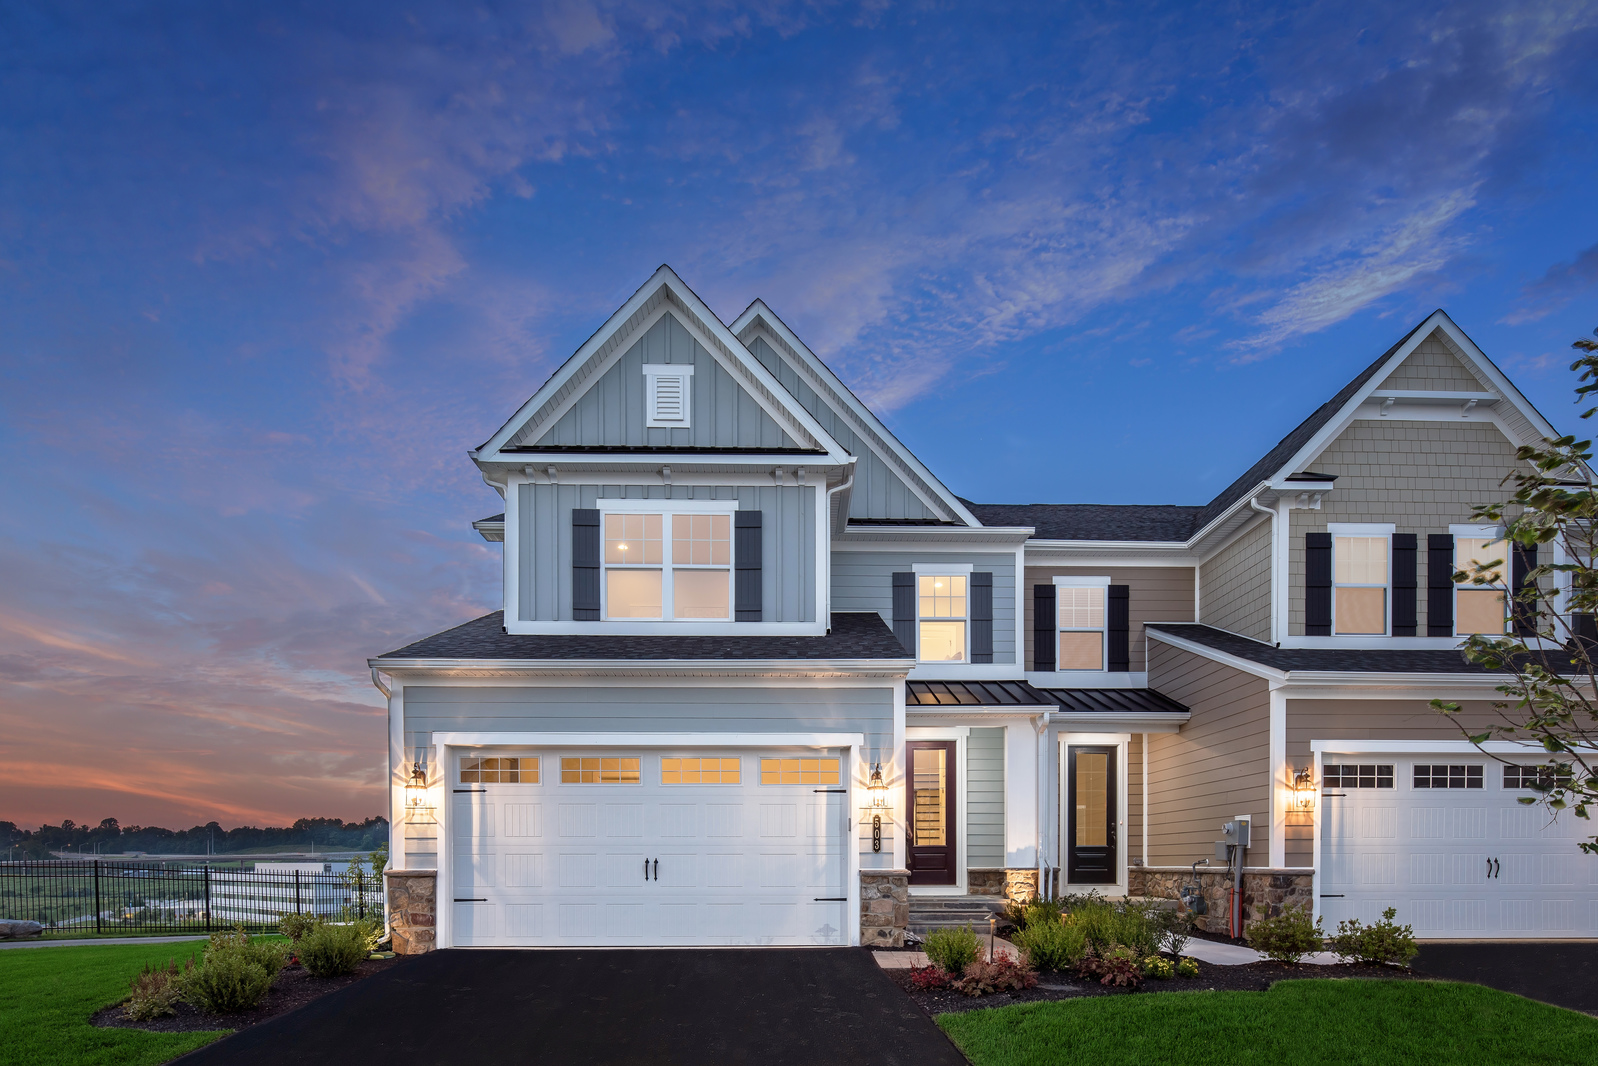 new luxury homes for sale at atwater carriage homes in malvern pa